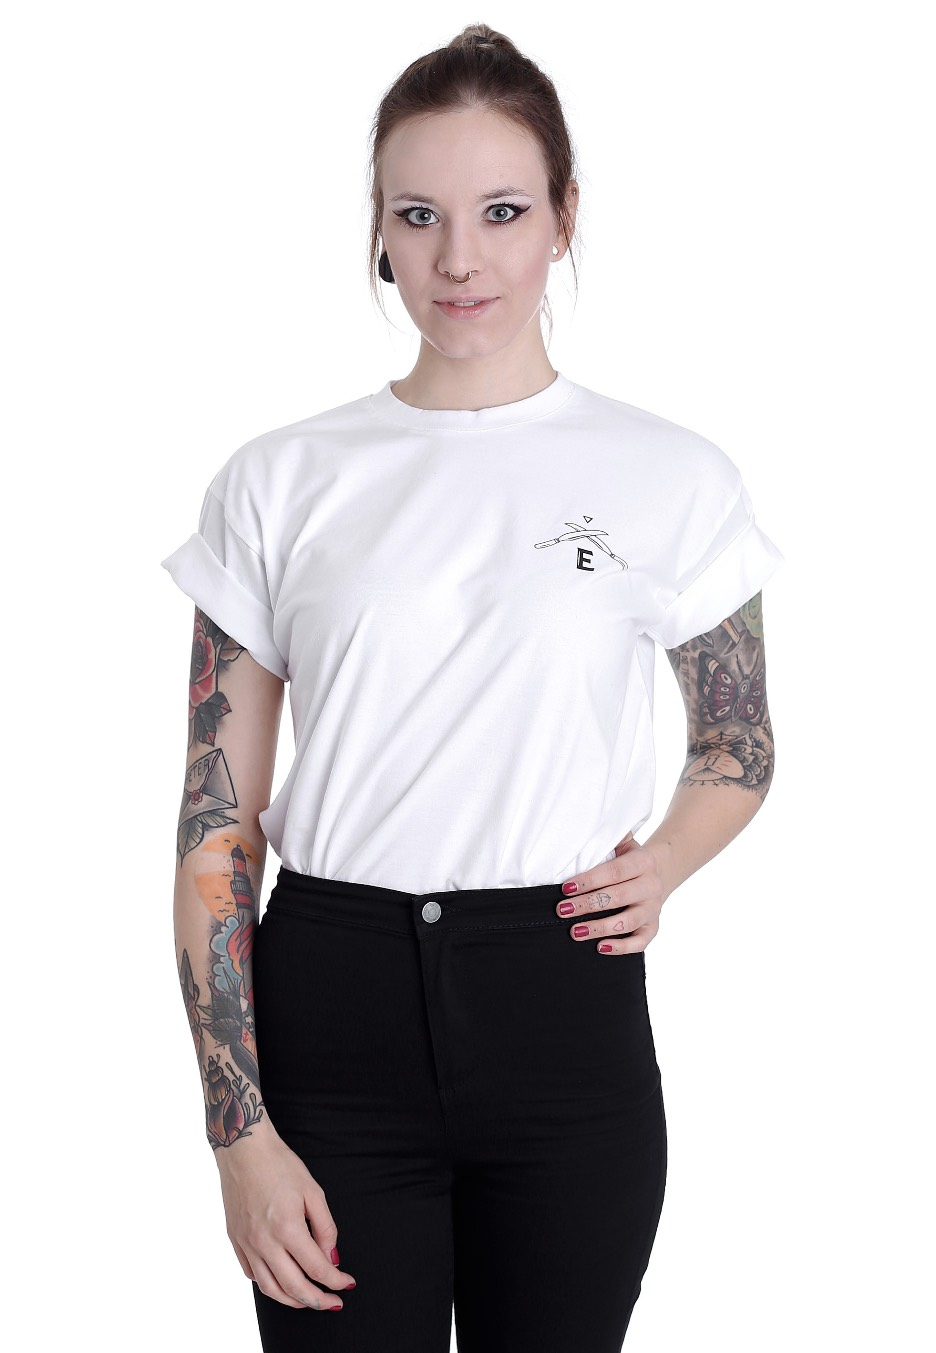 c0d8a20970b1d4 ElevenCult - Pentacles White - T-Shirt - Streetwear Shop - Impericon.com  Worldwide